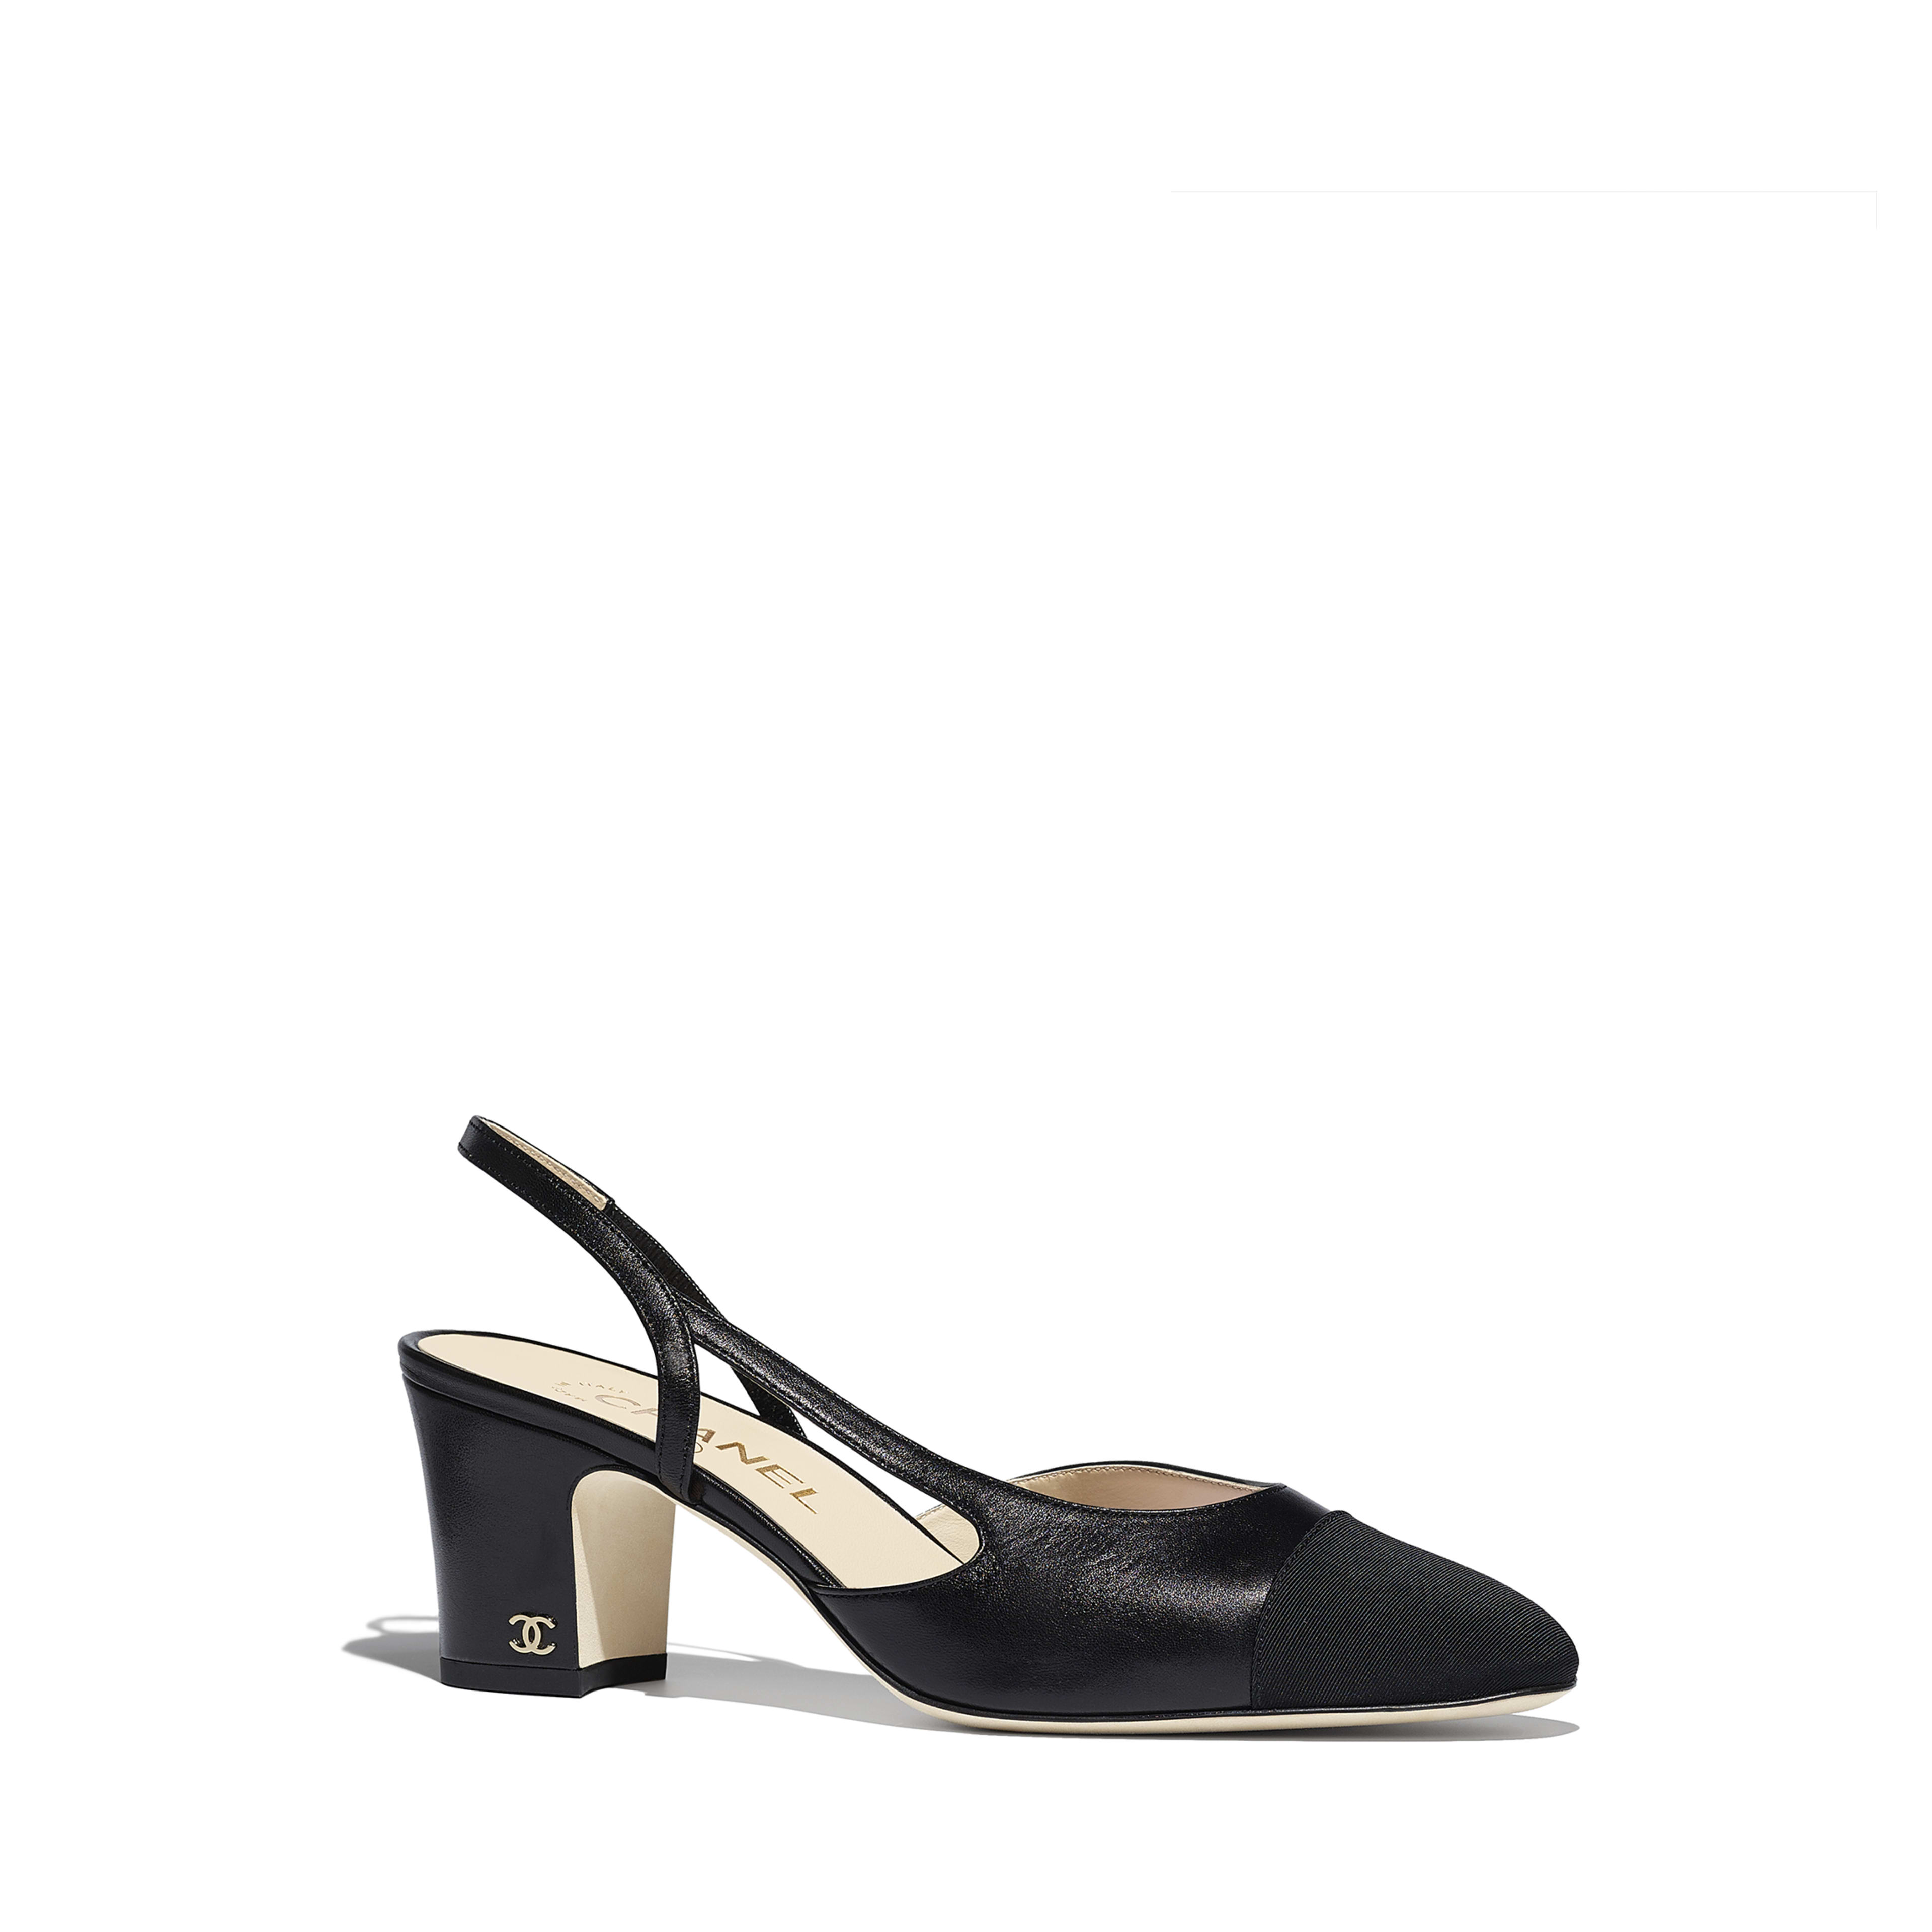 Slingbacks - Black - Goatskin & Grosgrain - Alternative view - see full sized version